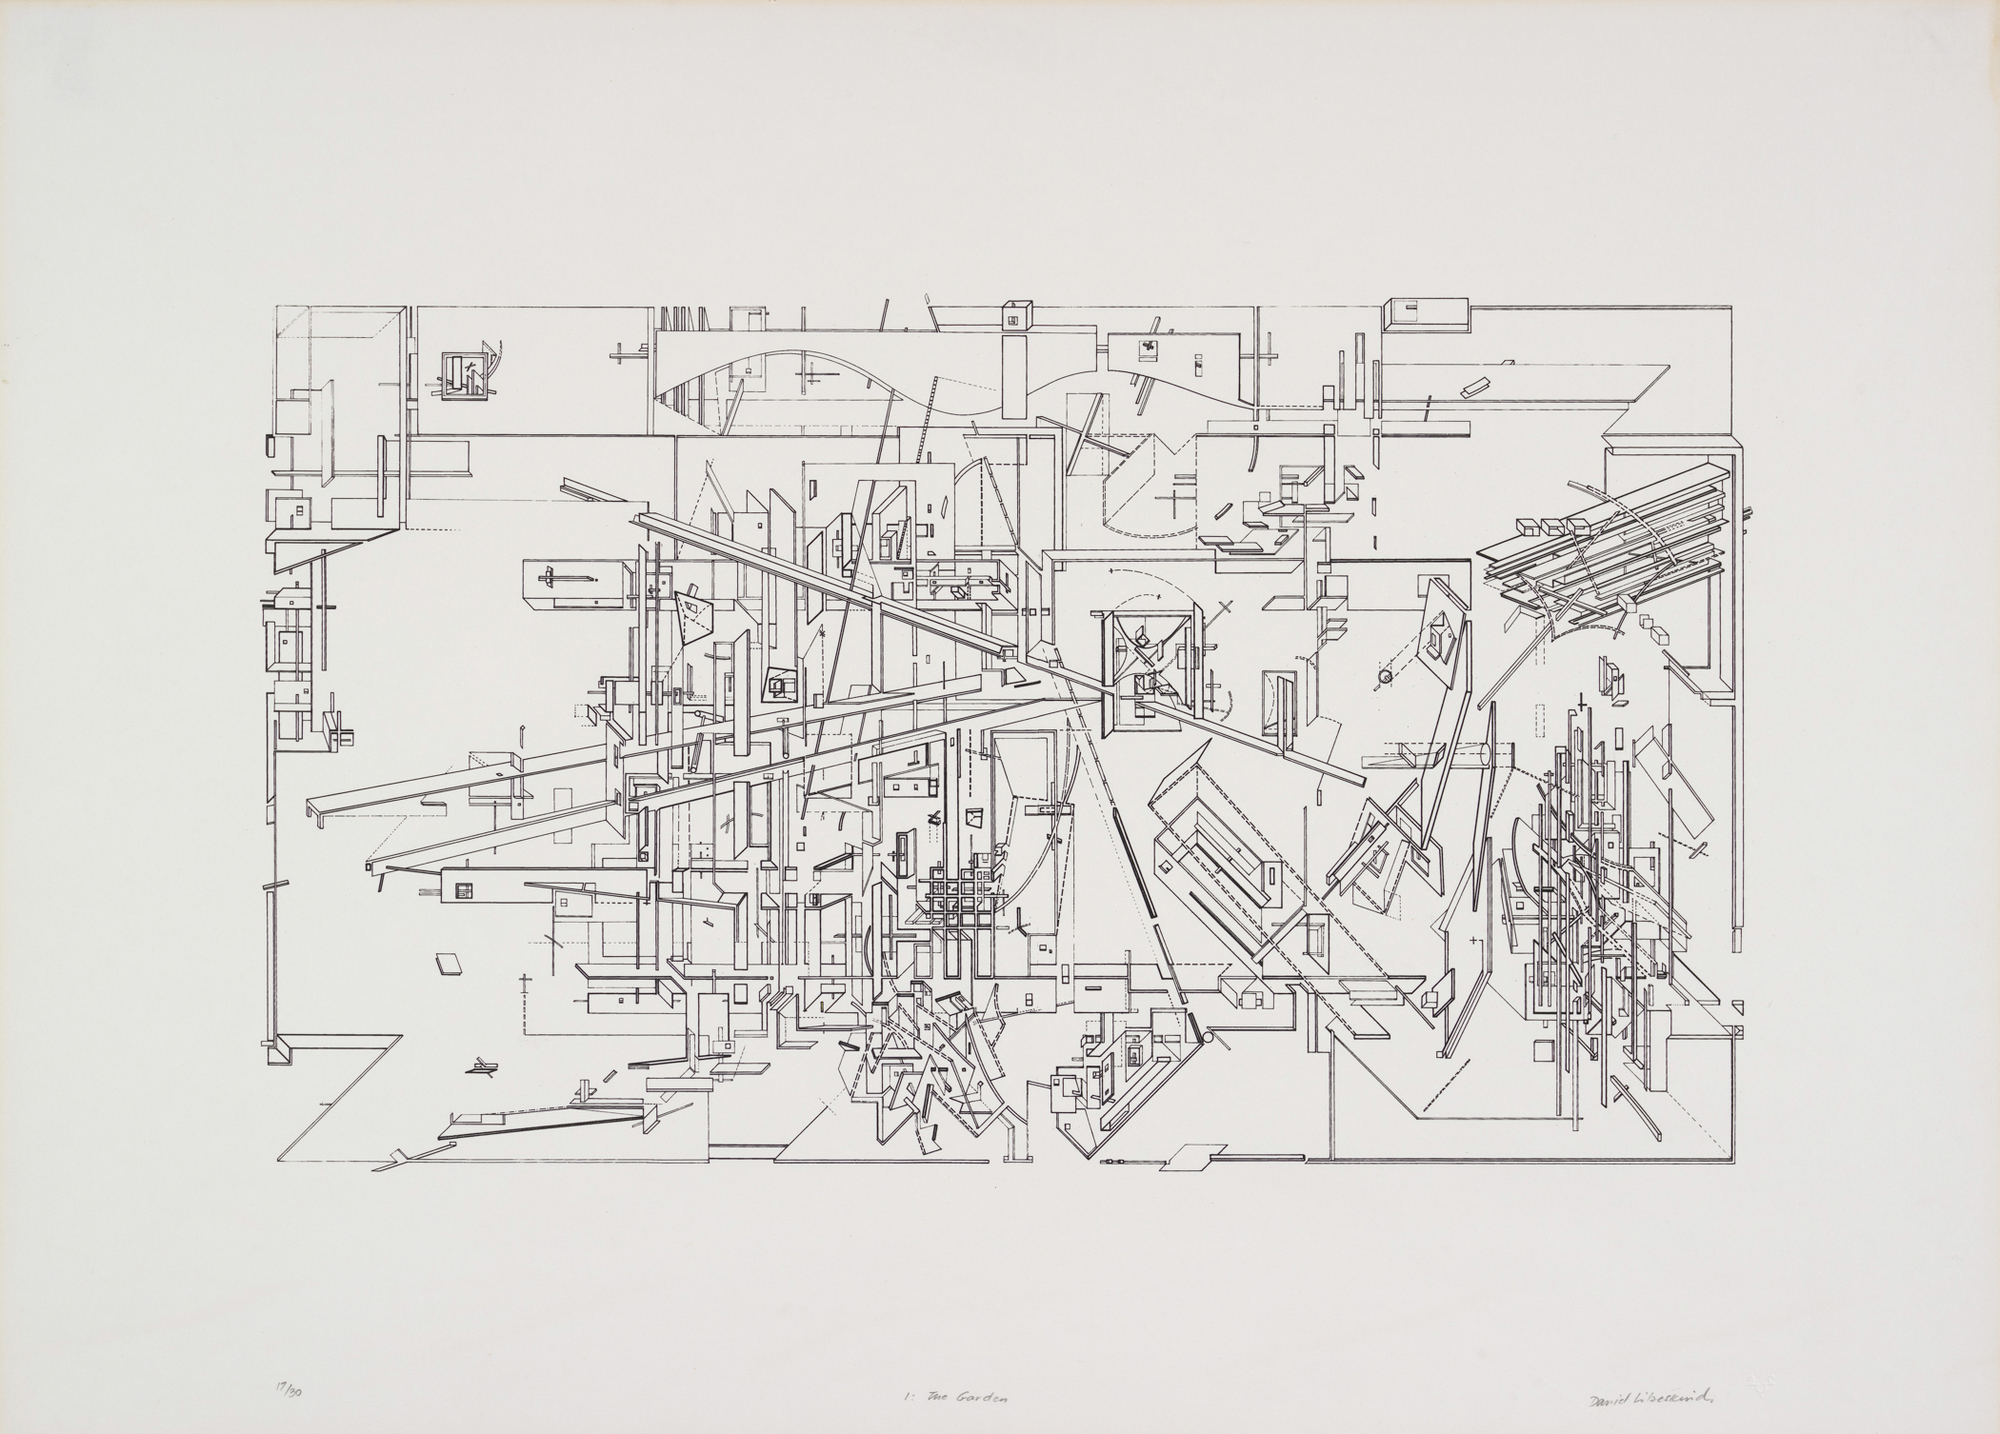 Daniel Libeskind, The Garden, 1979.  Daniel Libeskind. From the Collection  of